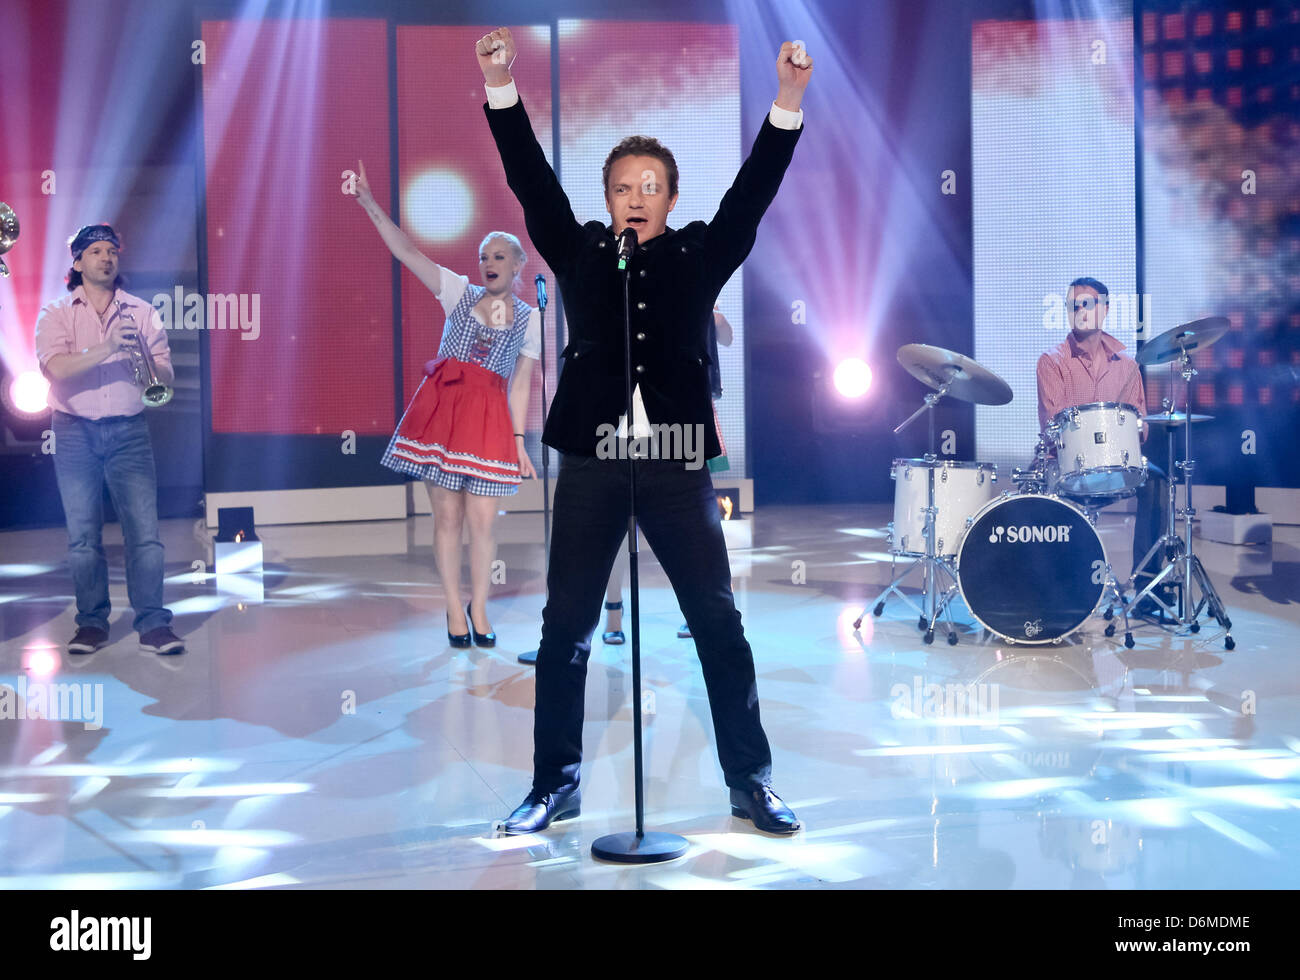 Singer  Stefan Mross performs during the German television music show 'Inka Bause Live' in Burg, Germany, - Stock Image